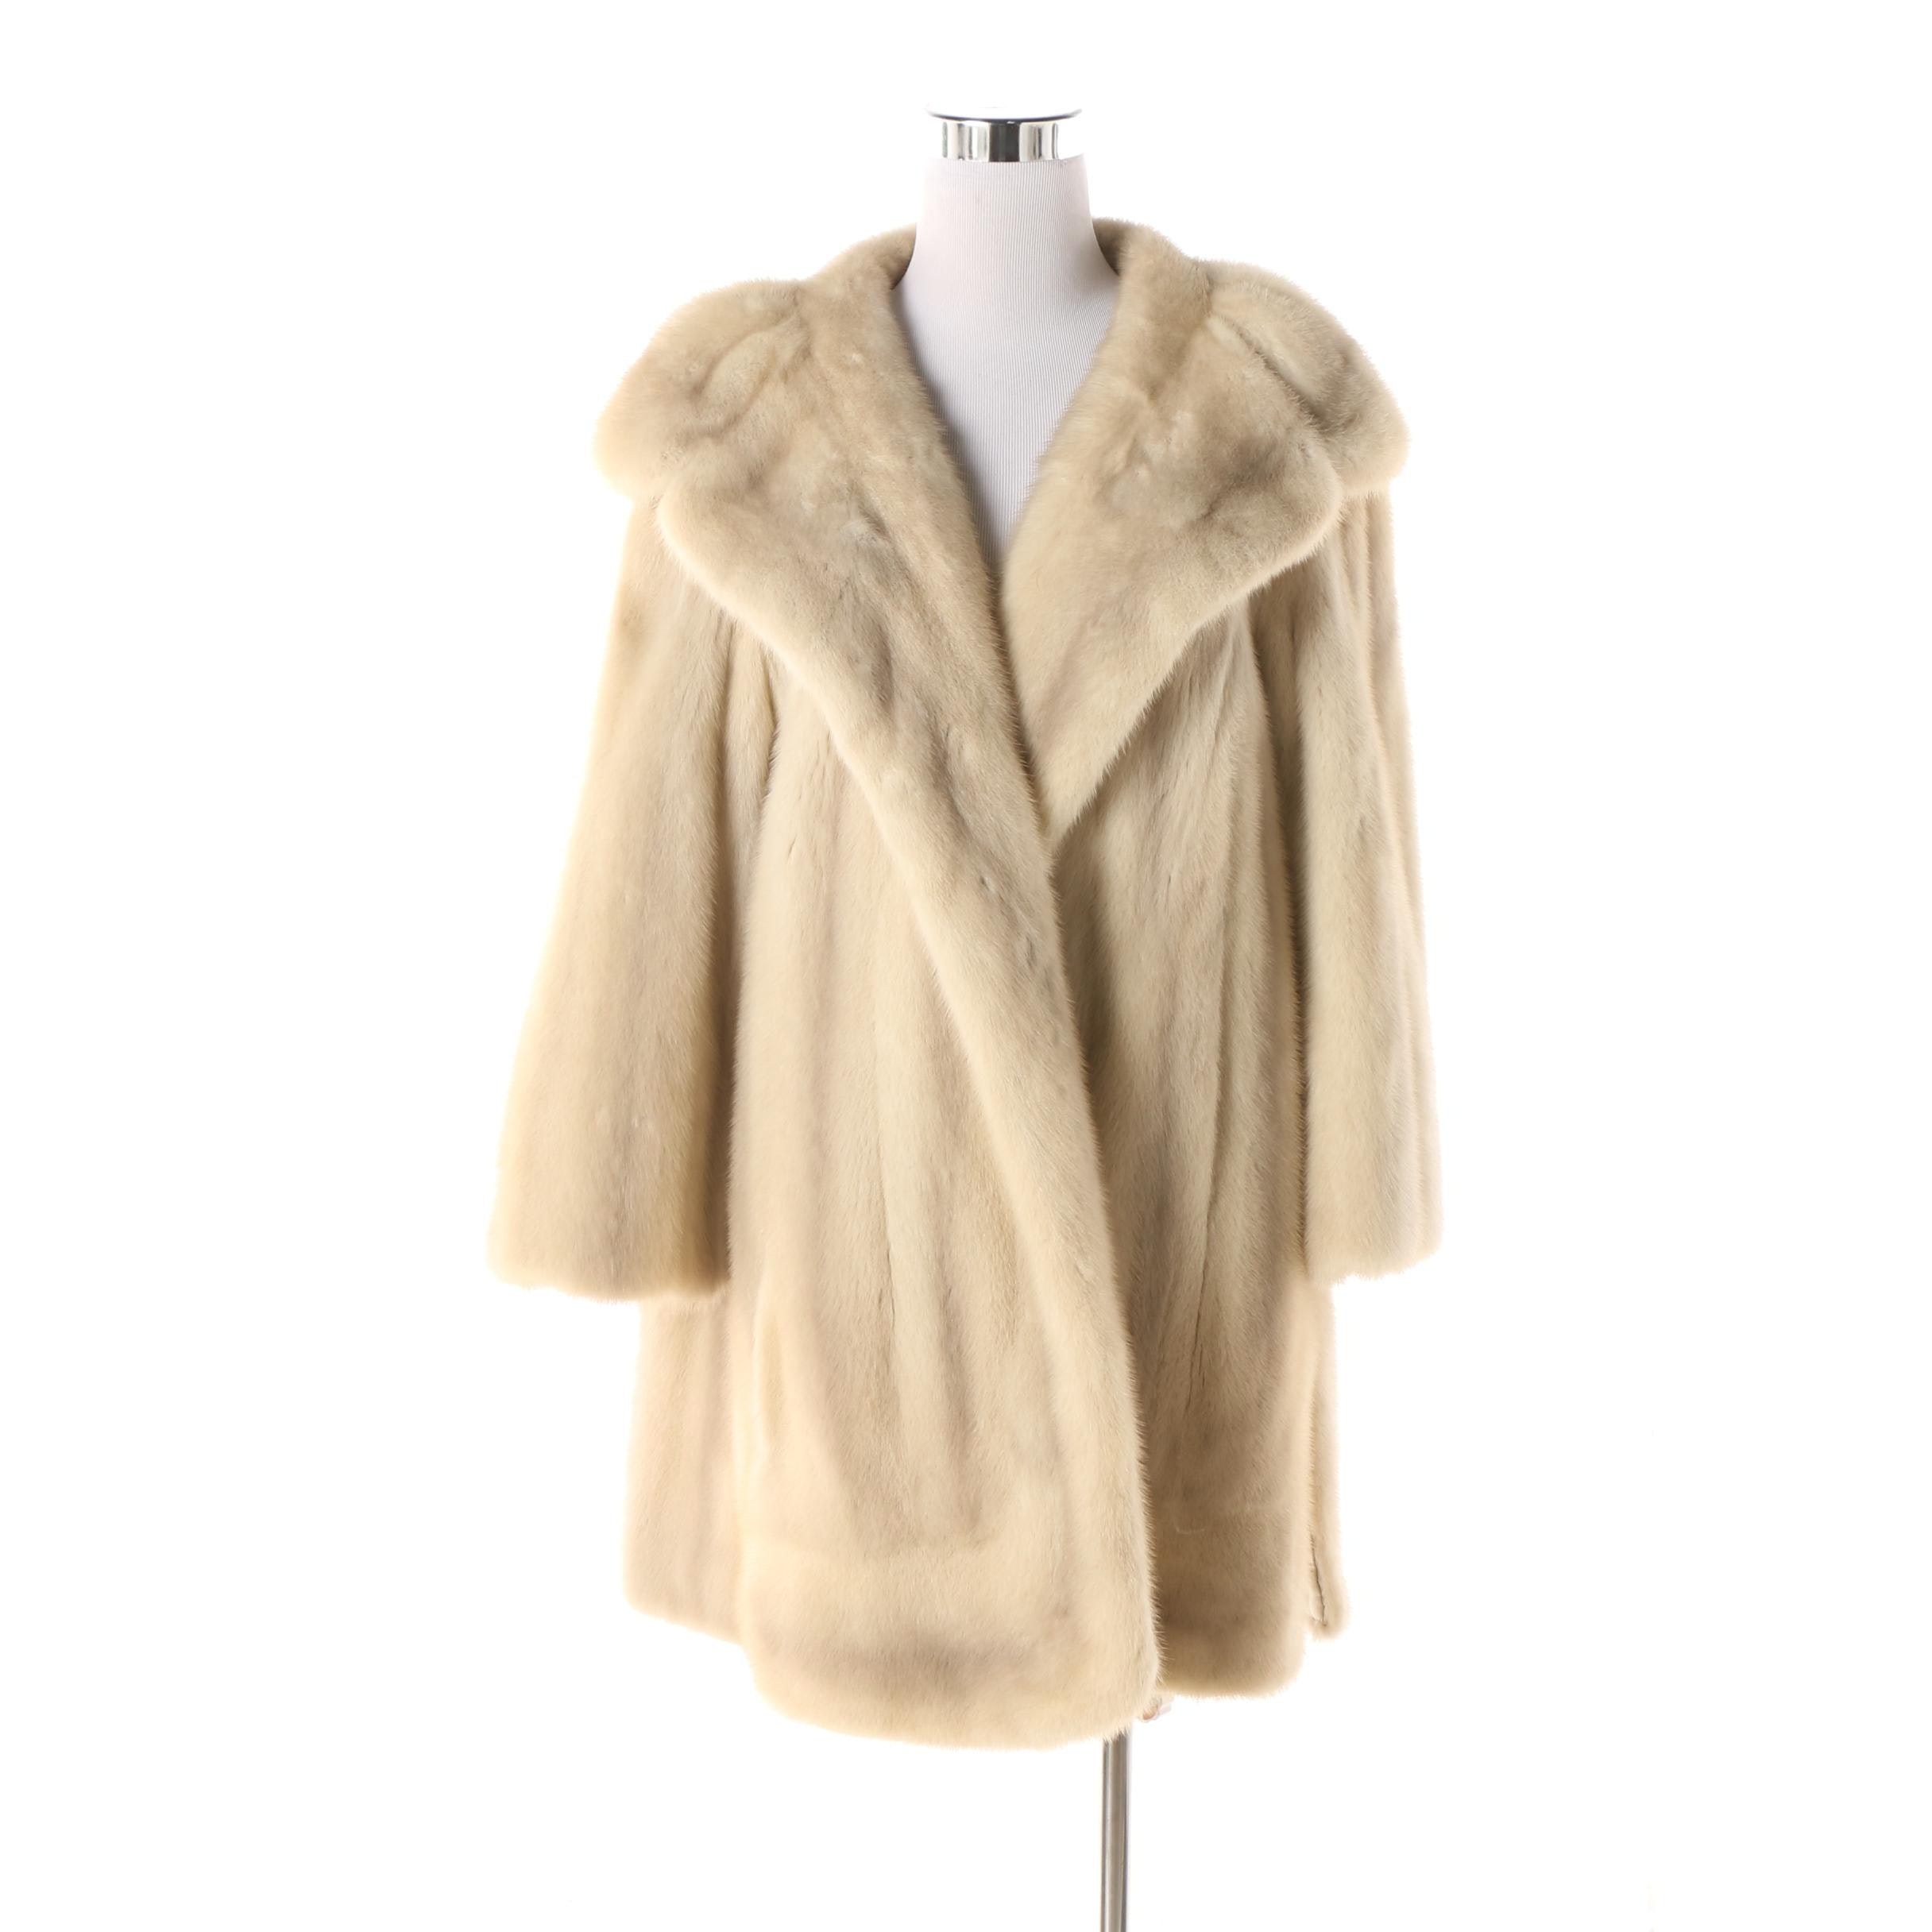 Women's Vintage Famous-Barr Fur Salon Blonde Mink Fur Coat with Shawl Collar